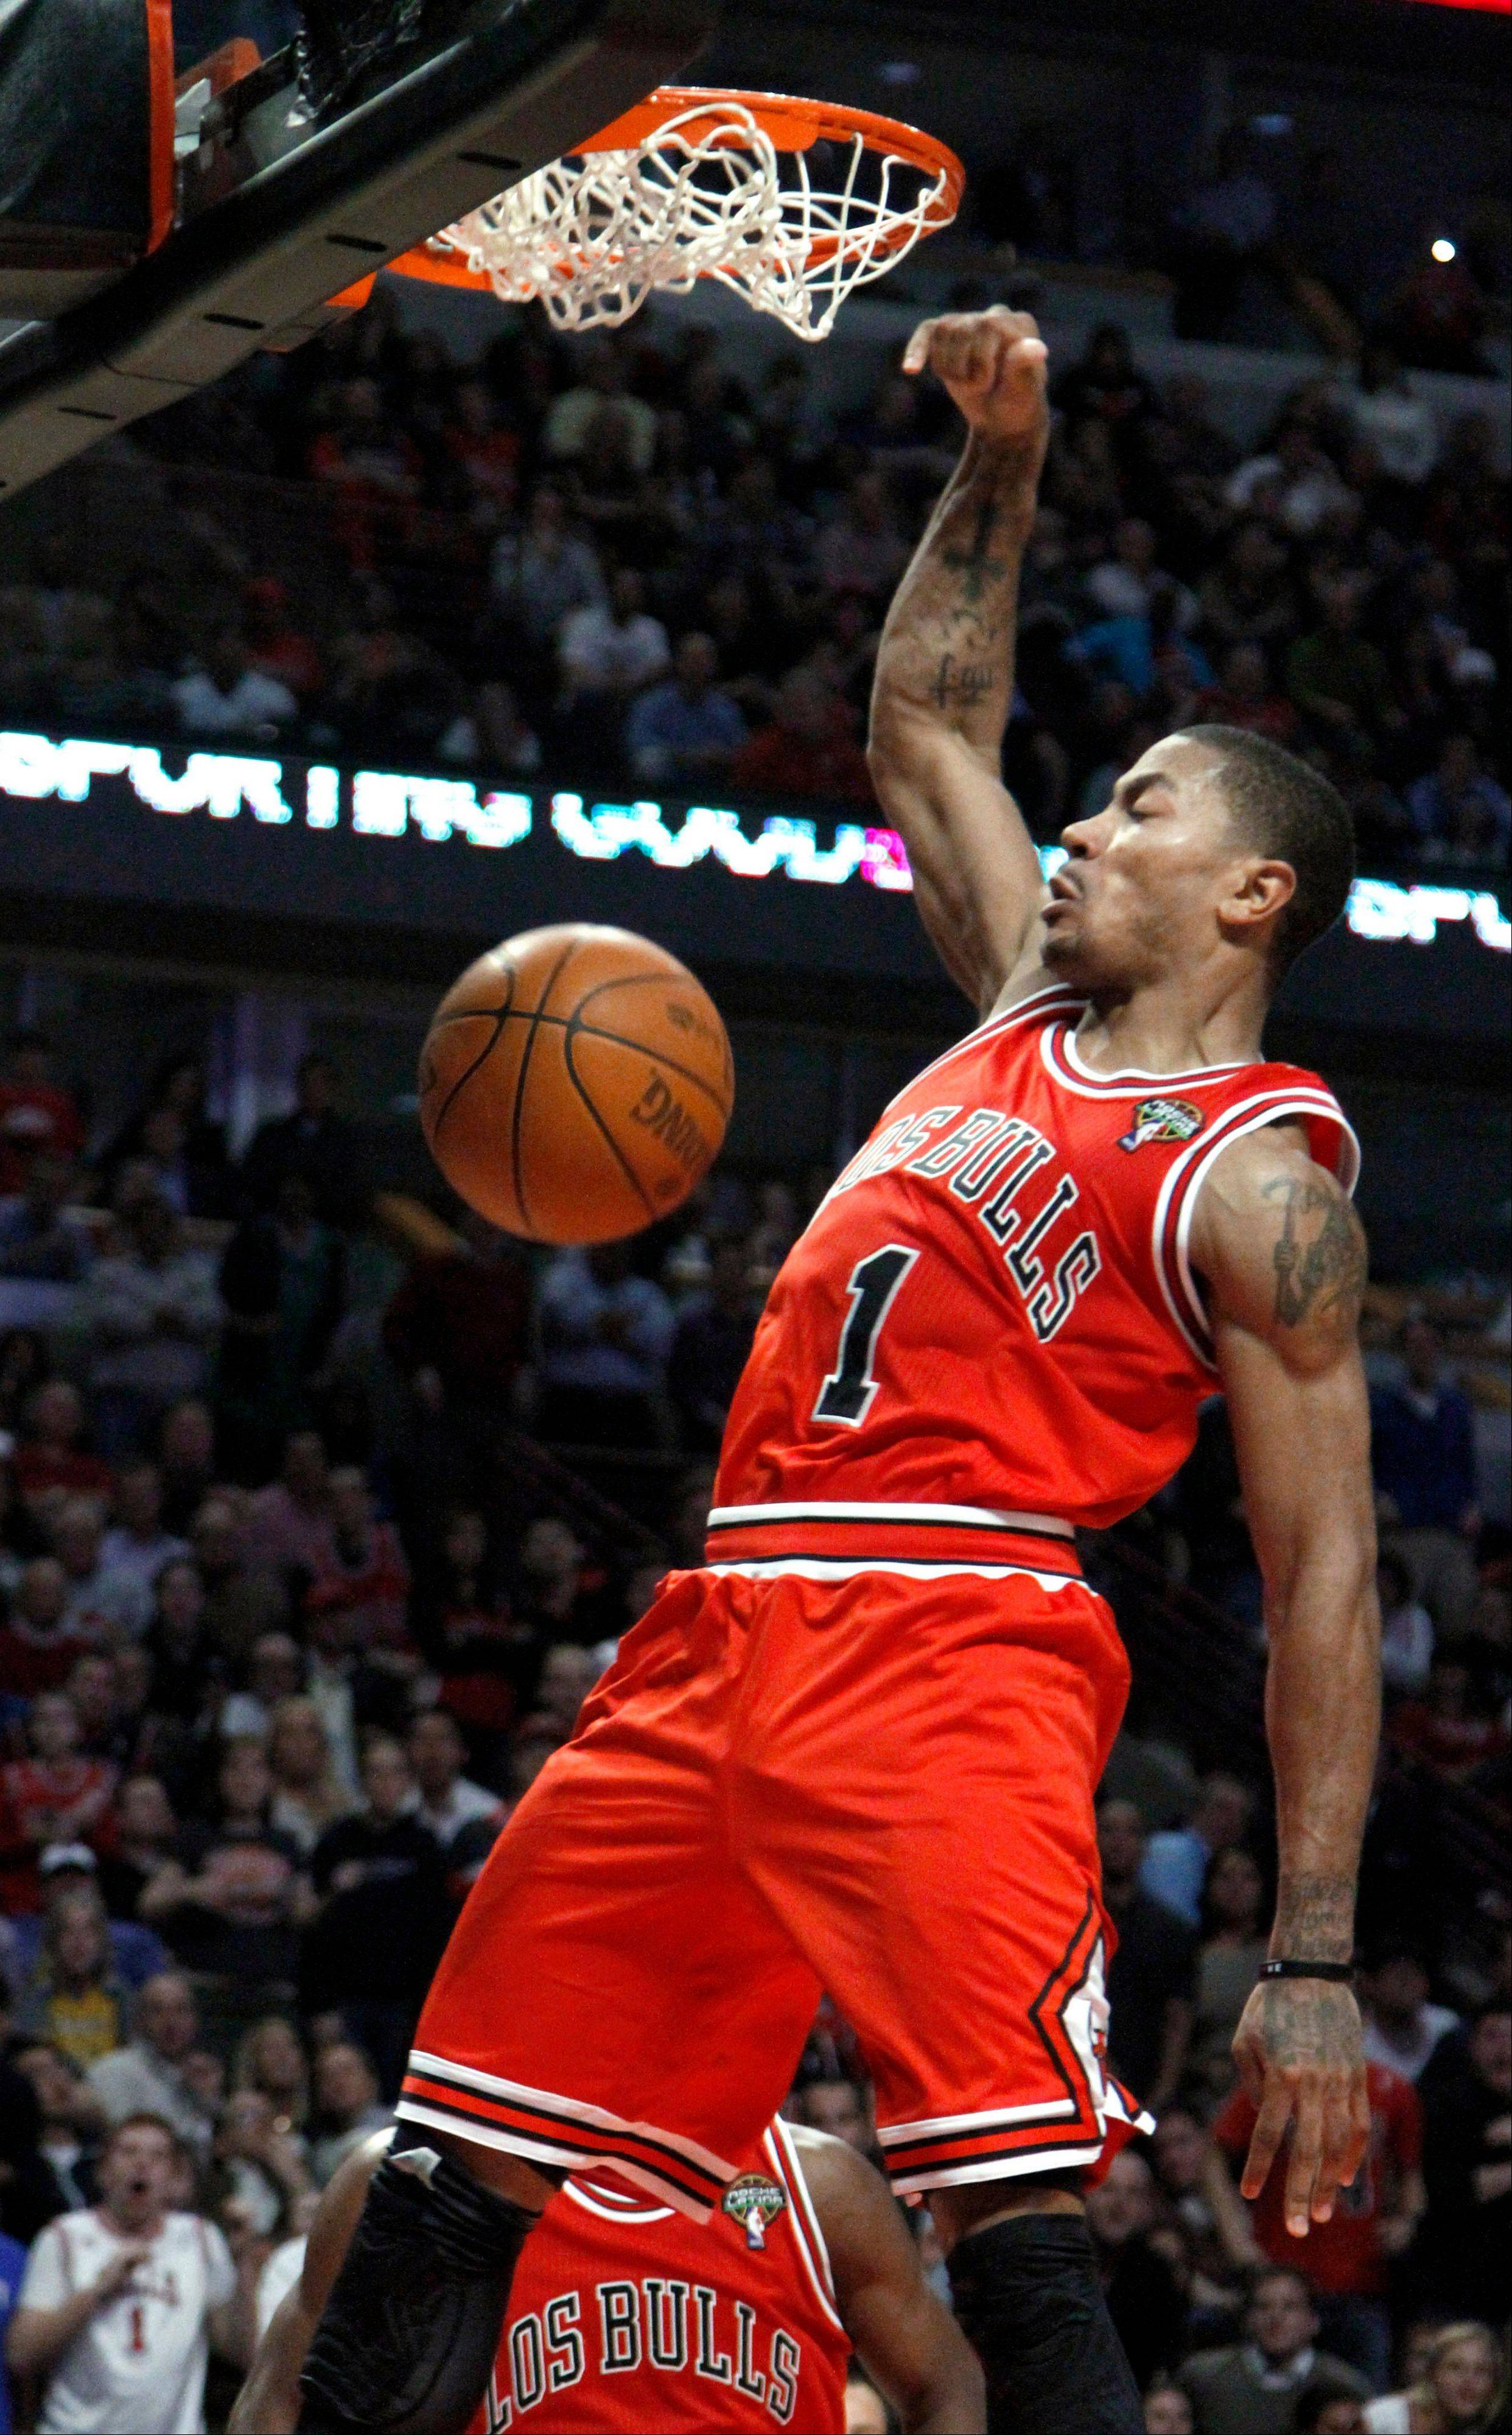 Chicago Bulls guard Derrick Rose dunks during the second half of an NBA basketball game against the New York Knicks, Monday, March 12, 2012, in Chicago. The Bulls won 104-99 with Rose scoring 32 points.